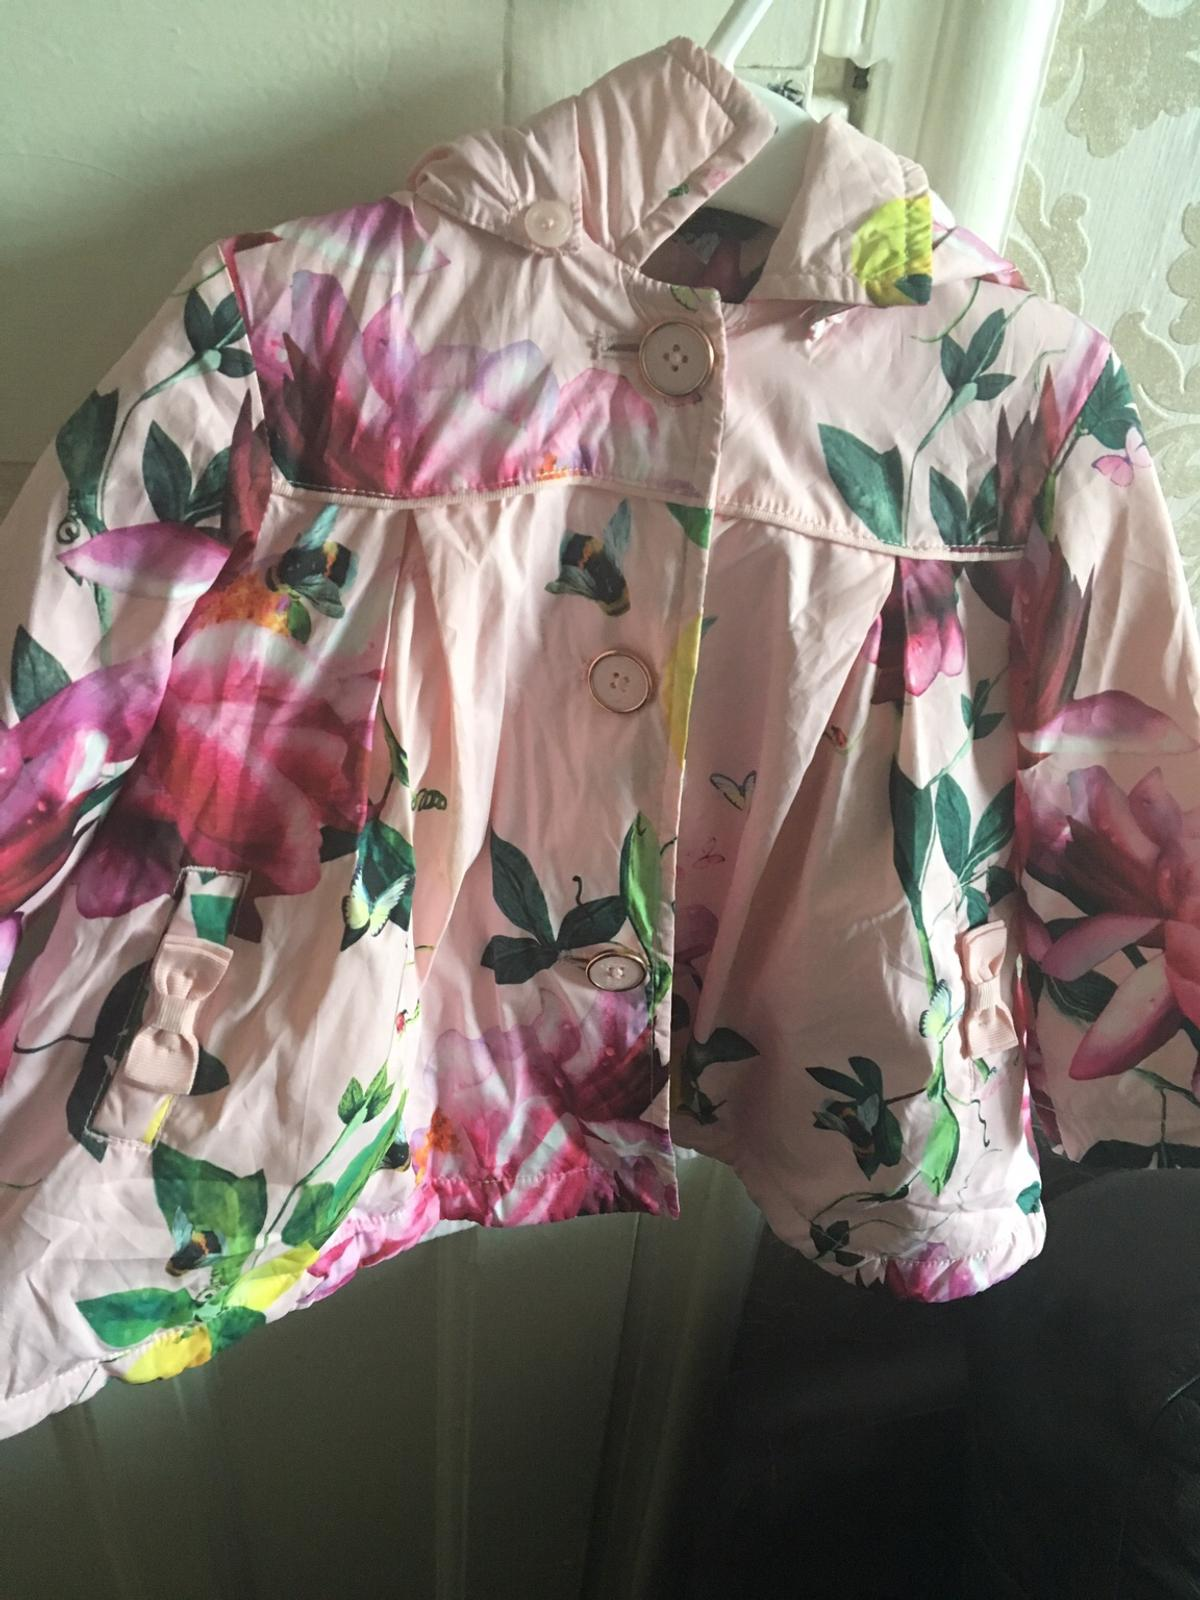 Daughter wore it a few times over winter great condition collection North Shields or can post for postal costs